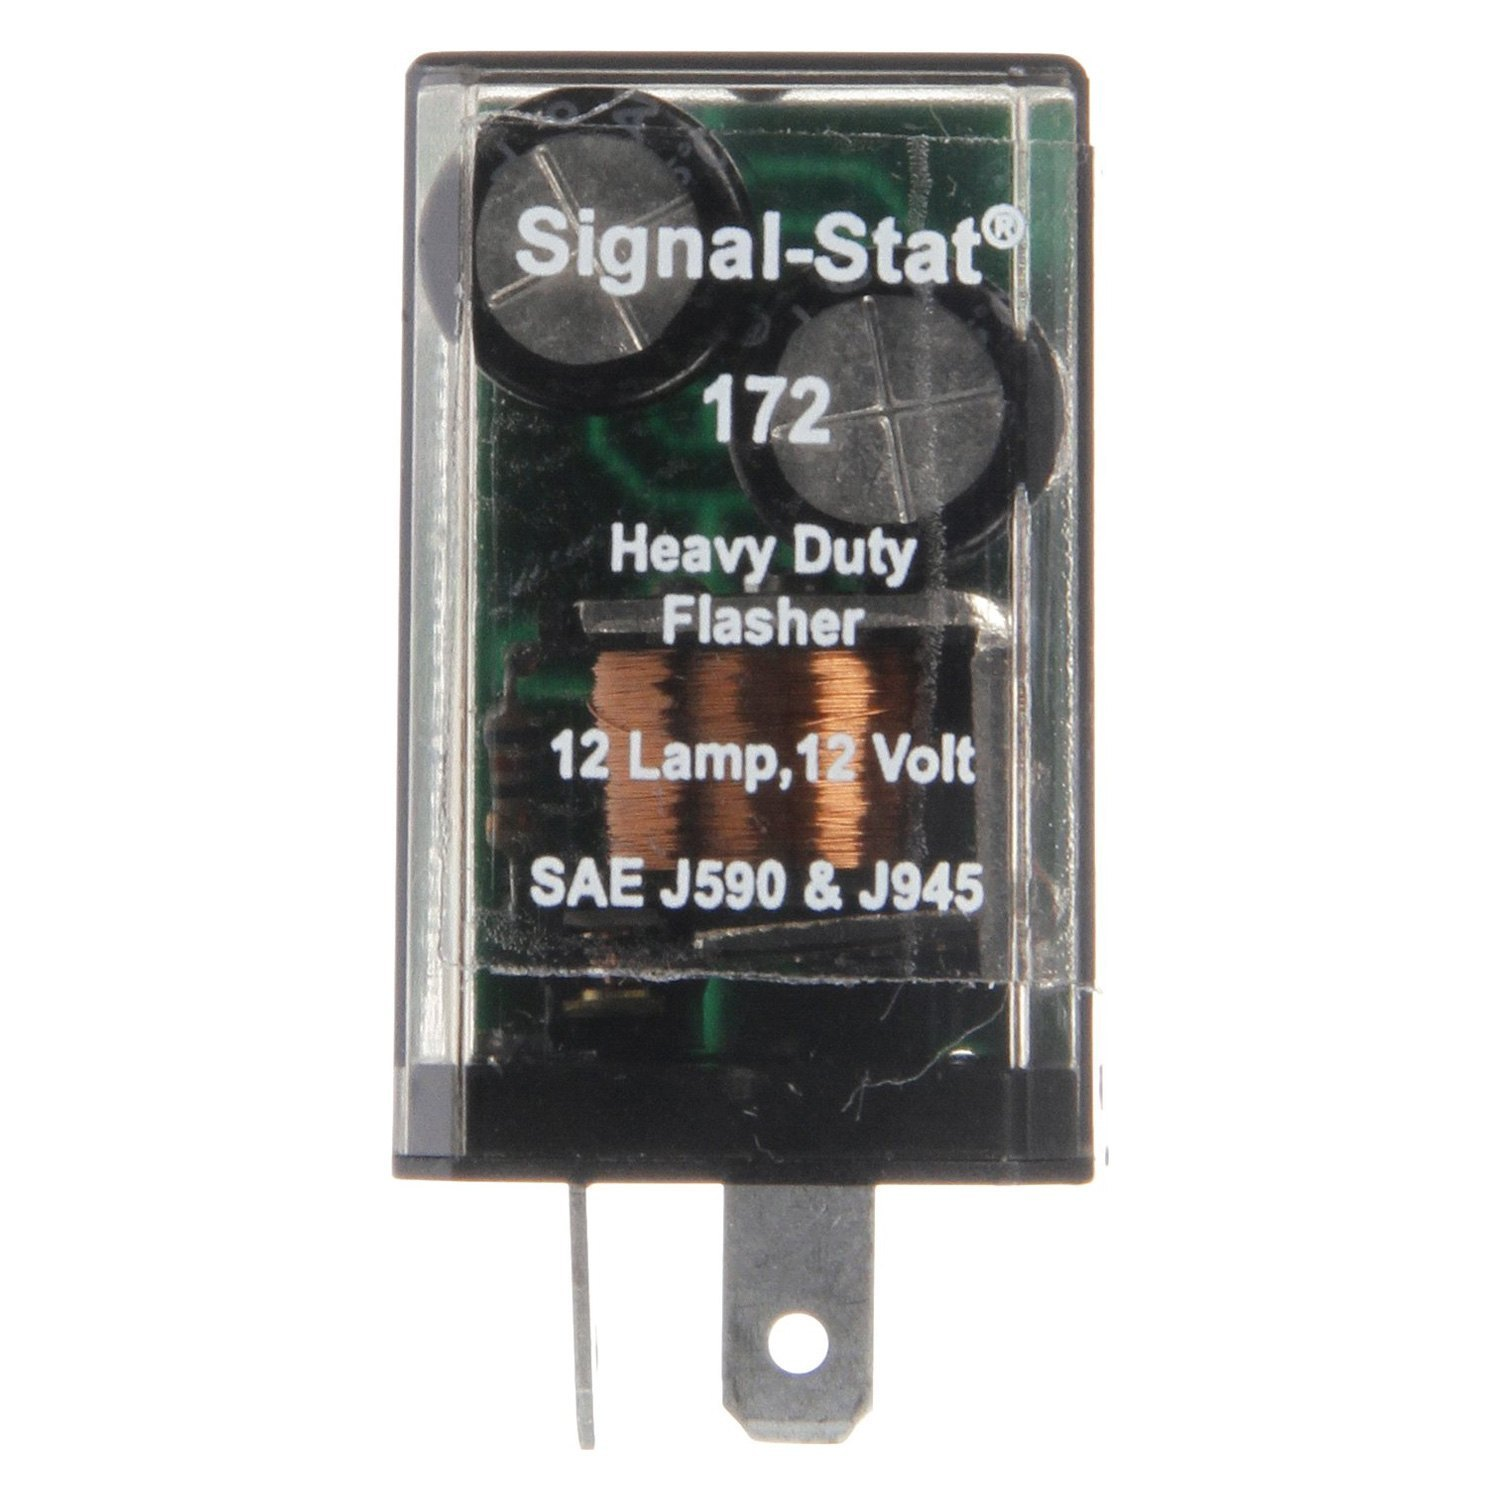 Signal Stat 242 Flasher Wiring Diagram Libraries Led Turn Relay Diagramstruck Lite Module